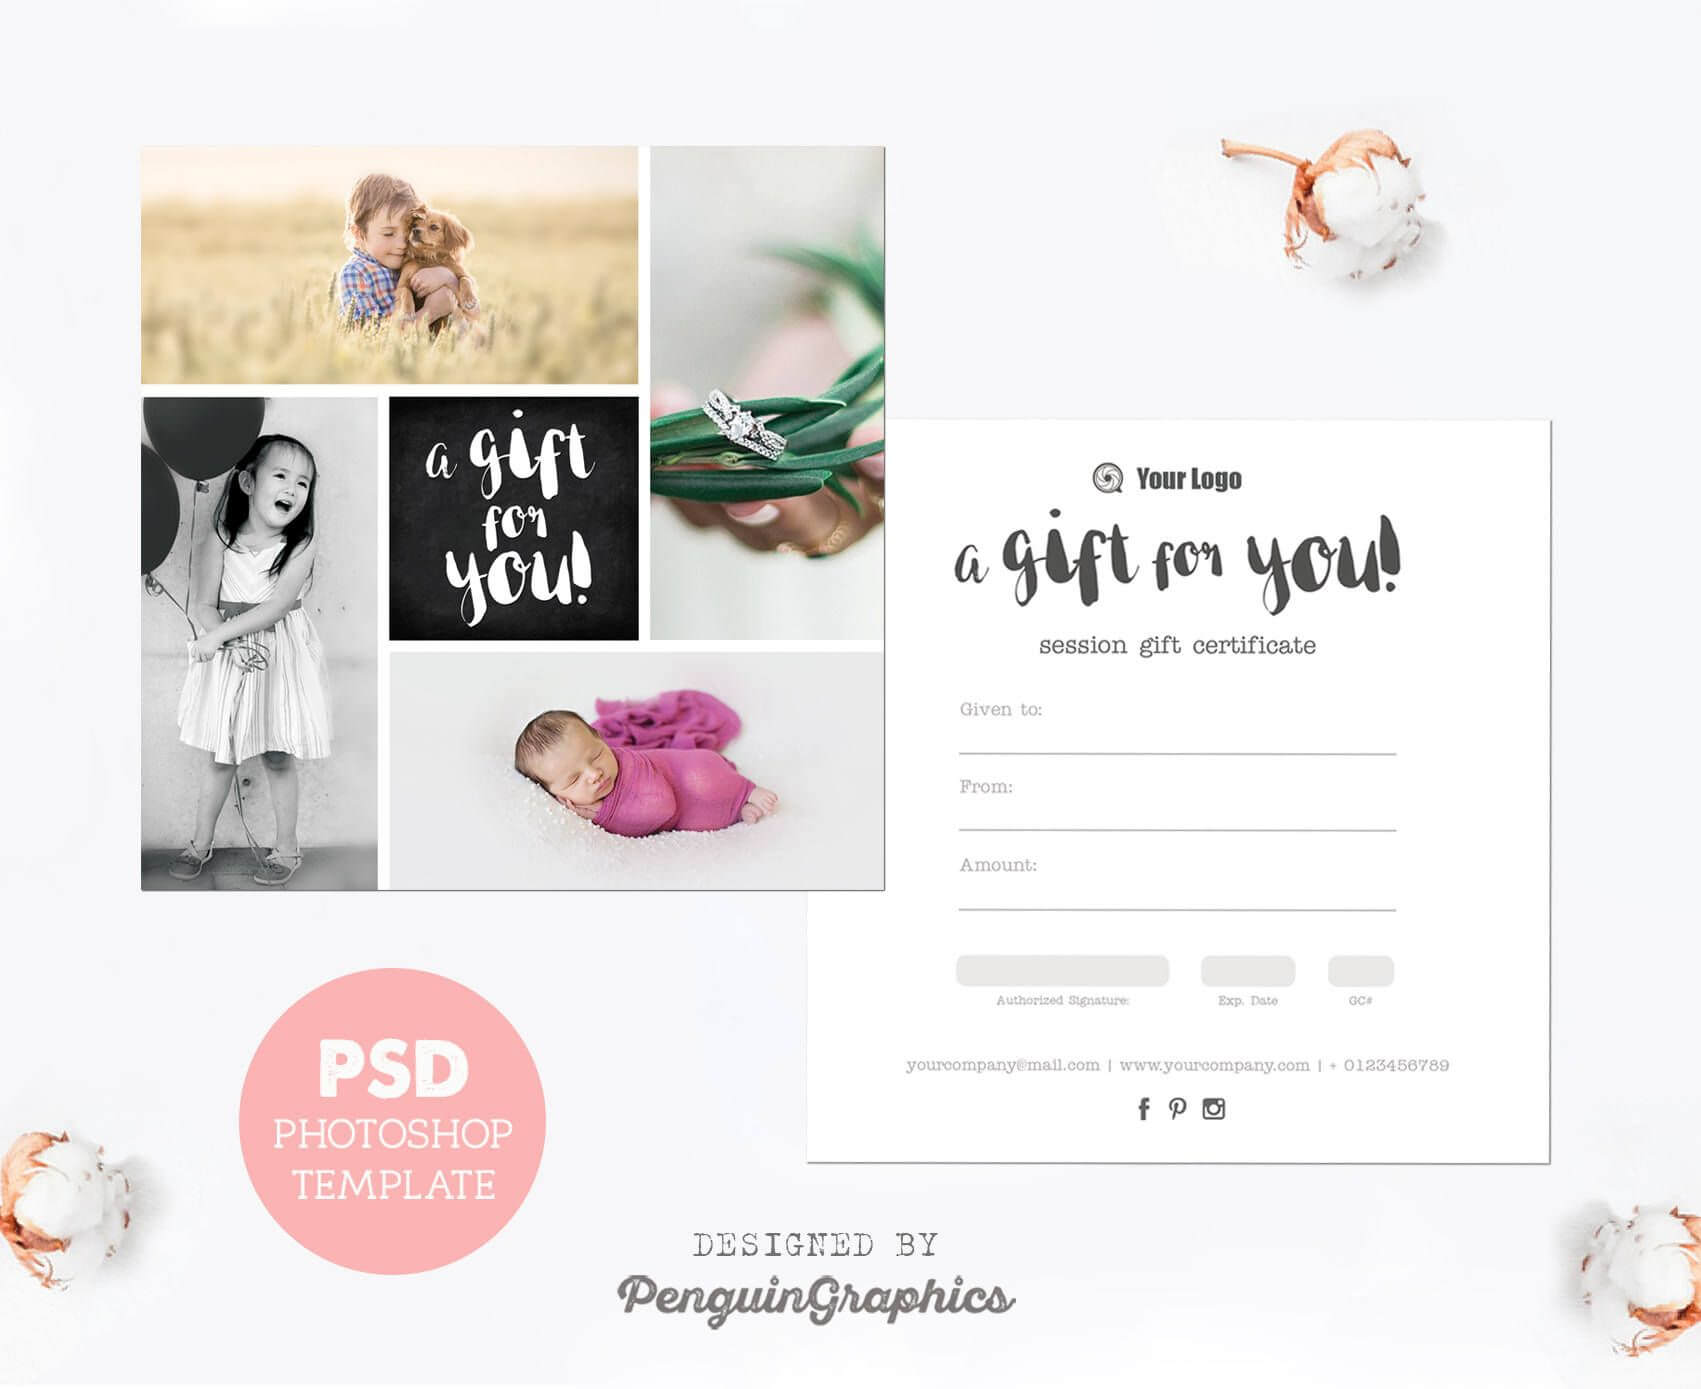 50 Stunning Photo Session Gift Certificate Template For Photoshoot Gift Certificate Template